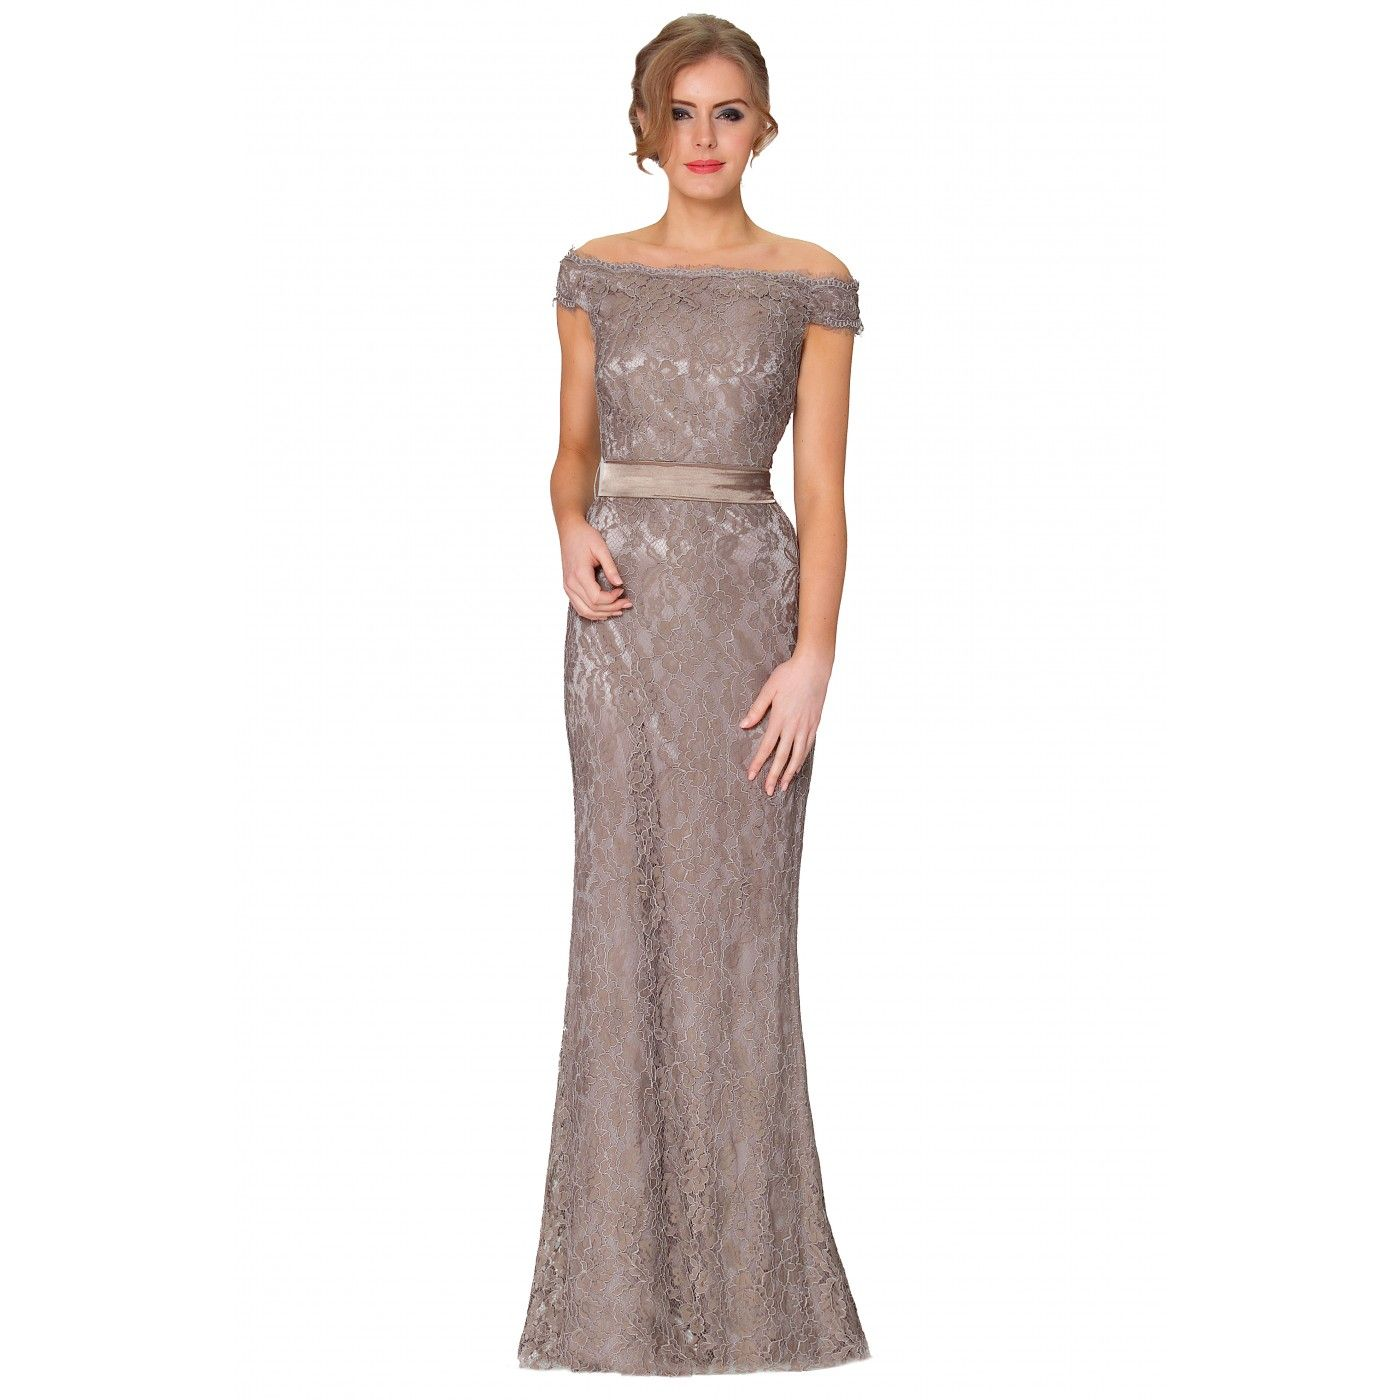 Charming lace fish tail covered long evening bridesmaid dress